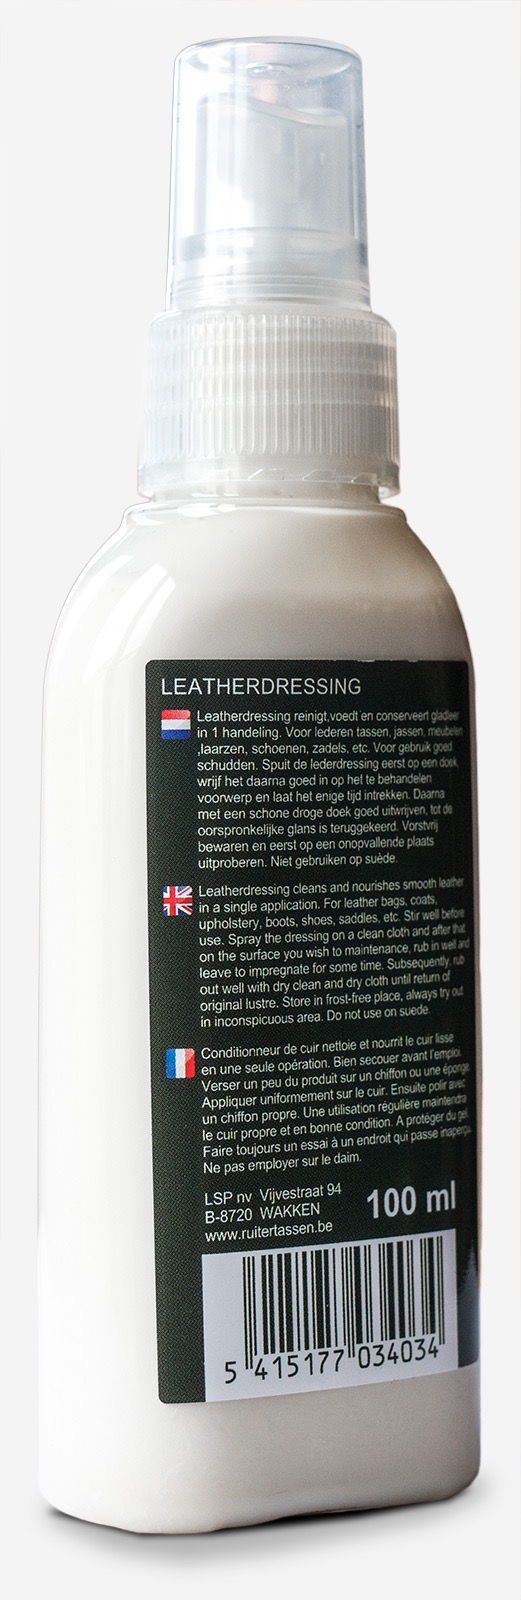 Spray conditioner for leather bags.